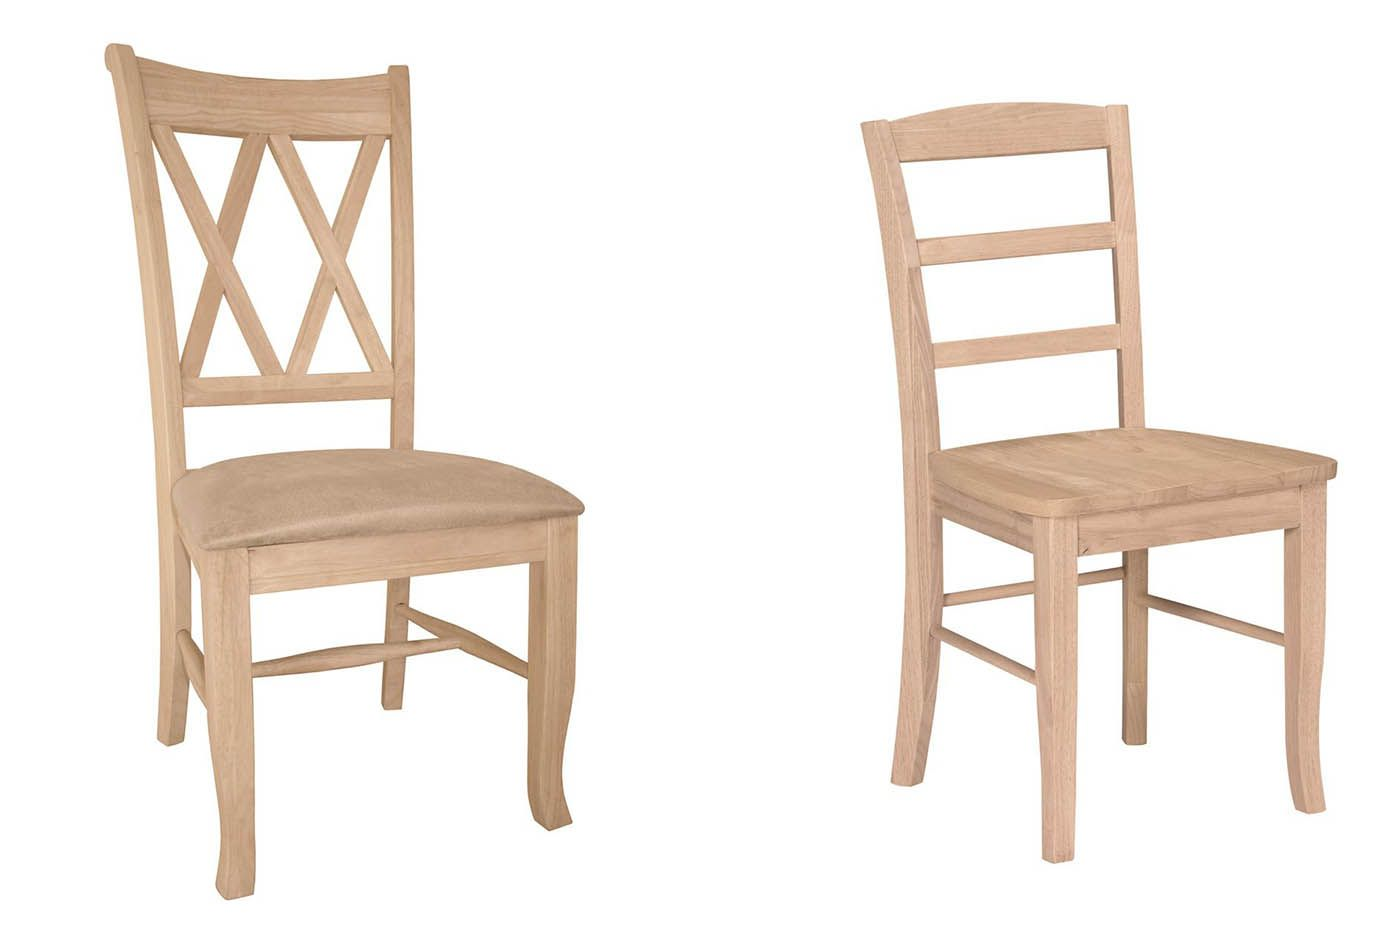 Exceptionnel Unfinished Wood Dining Chairs Picture 1,393×943 Pixels